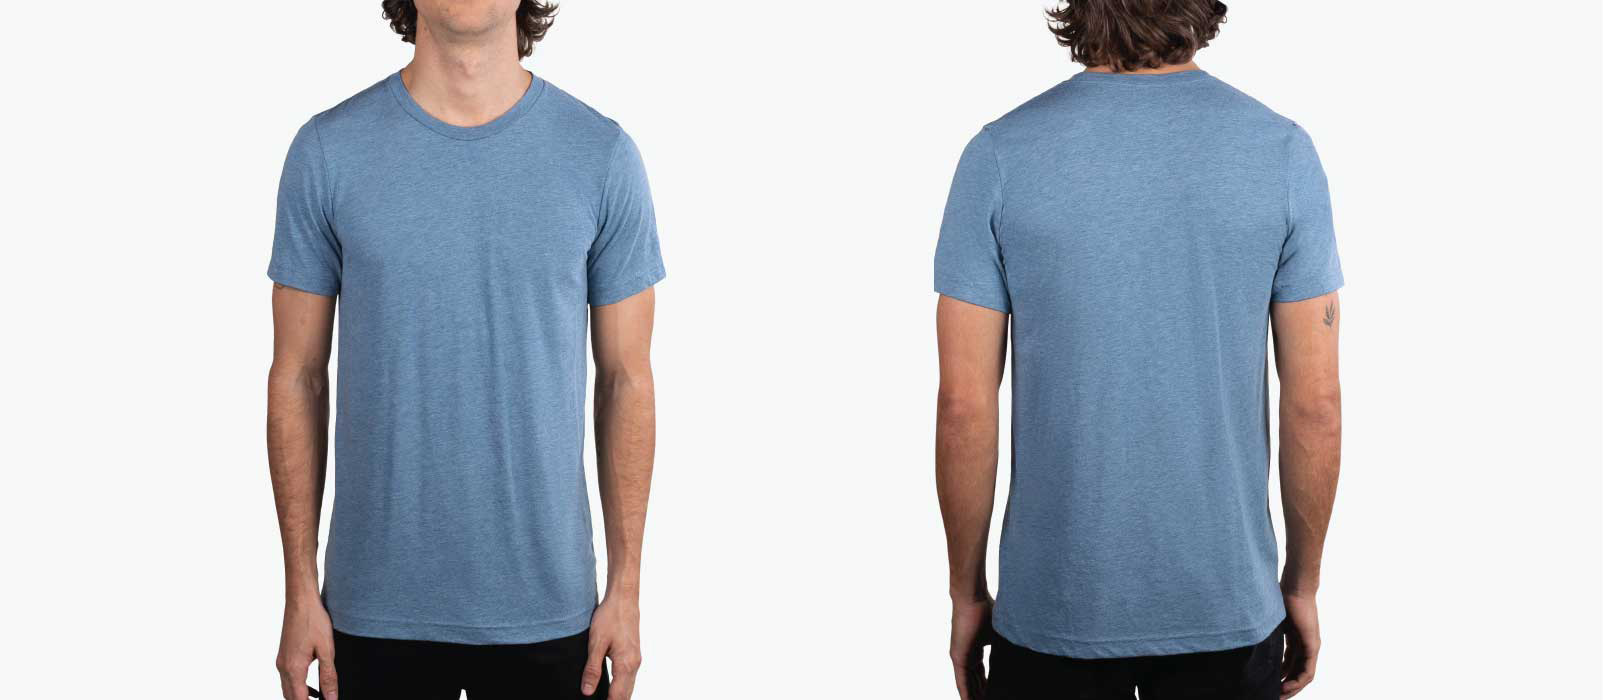 man wearing front and back of steel blue shirt